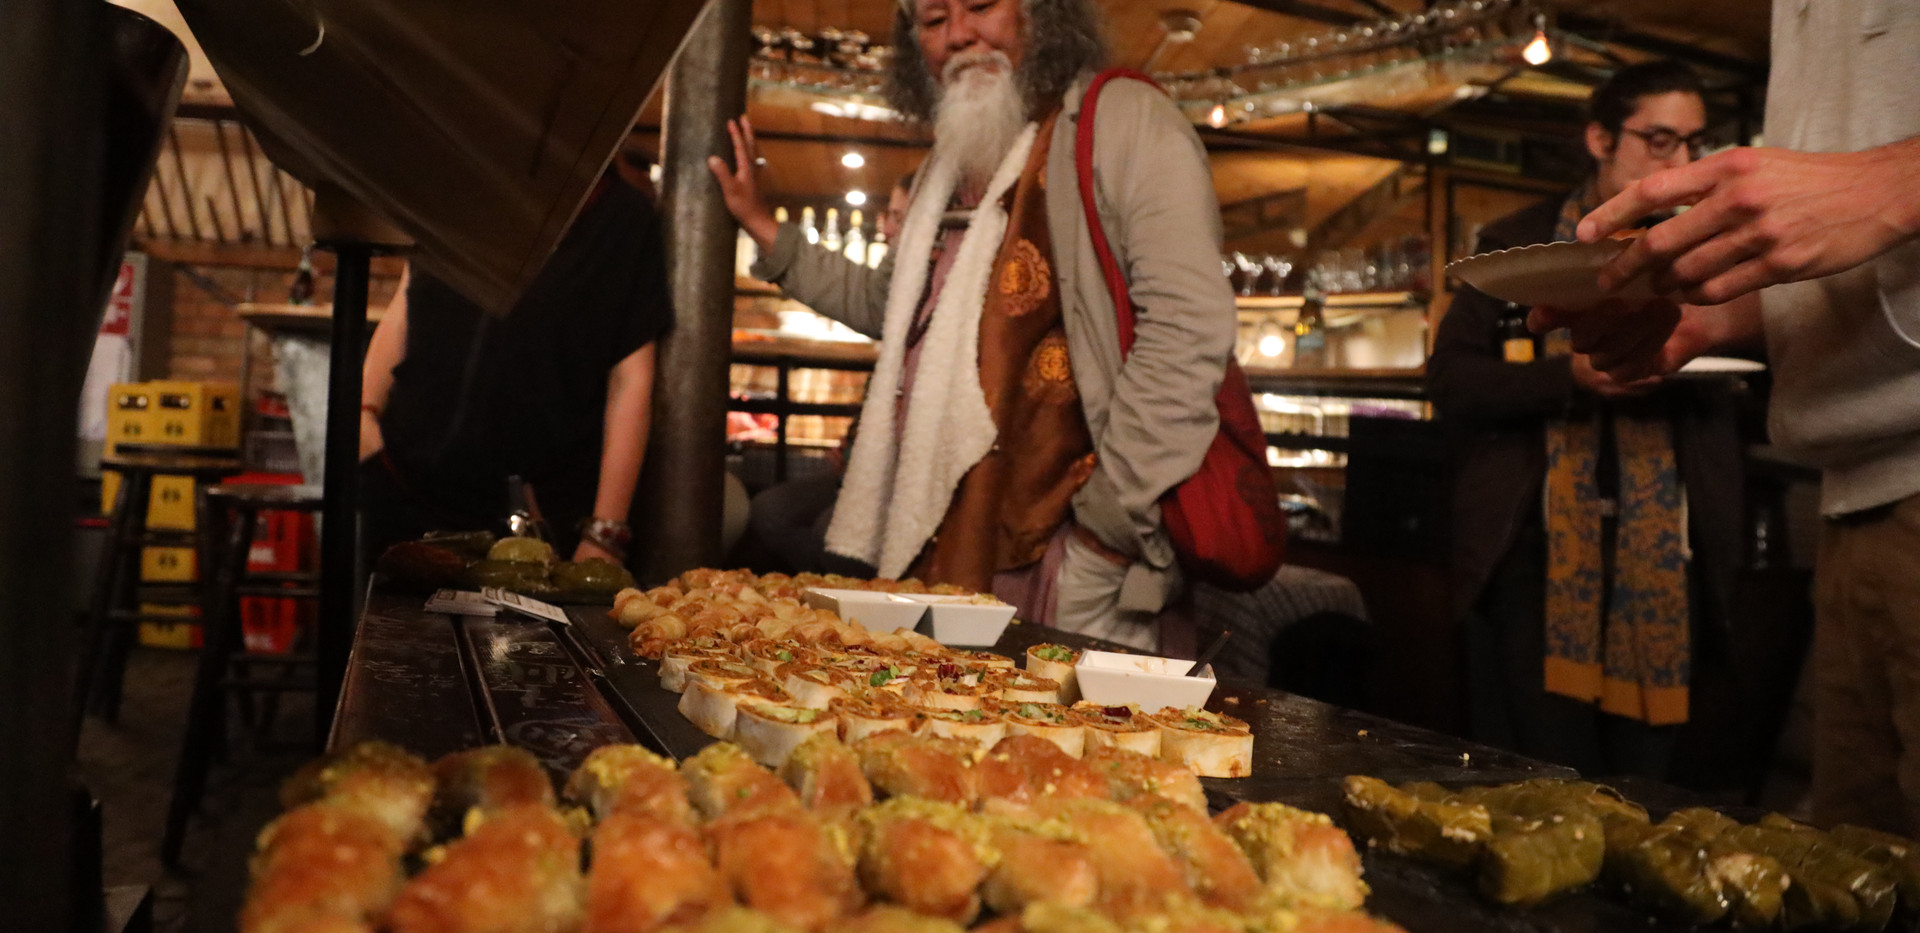 Catering from Ali Baba Restaurant Bern